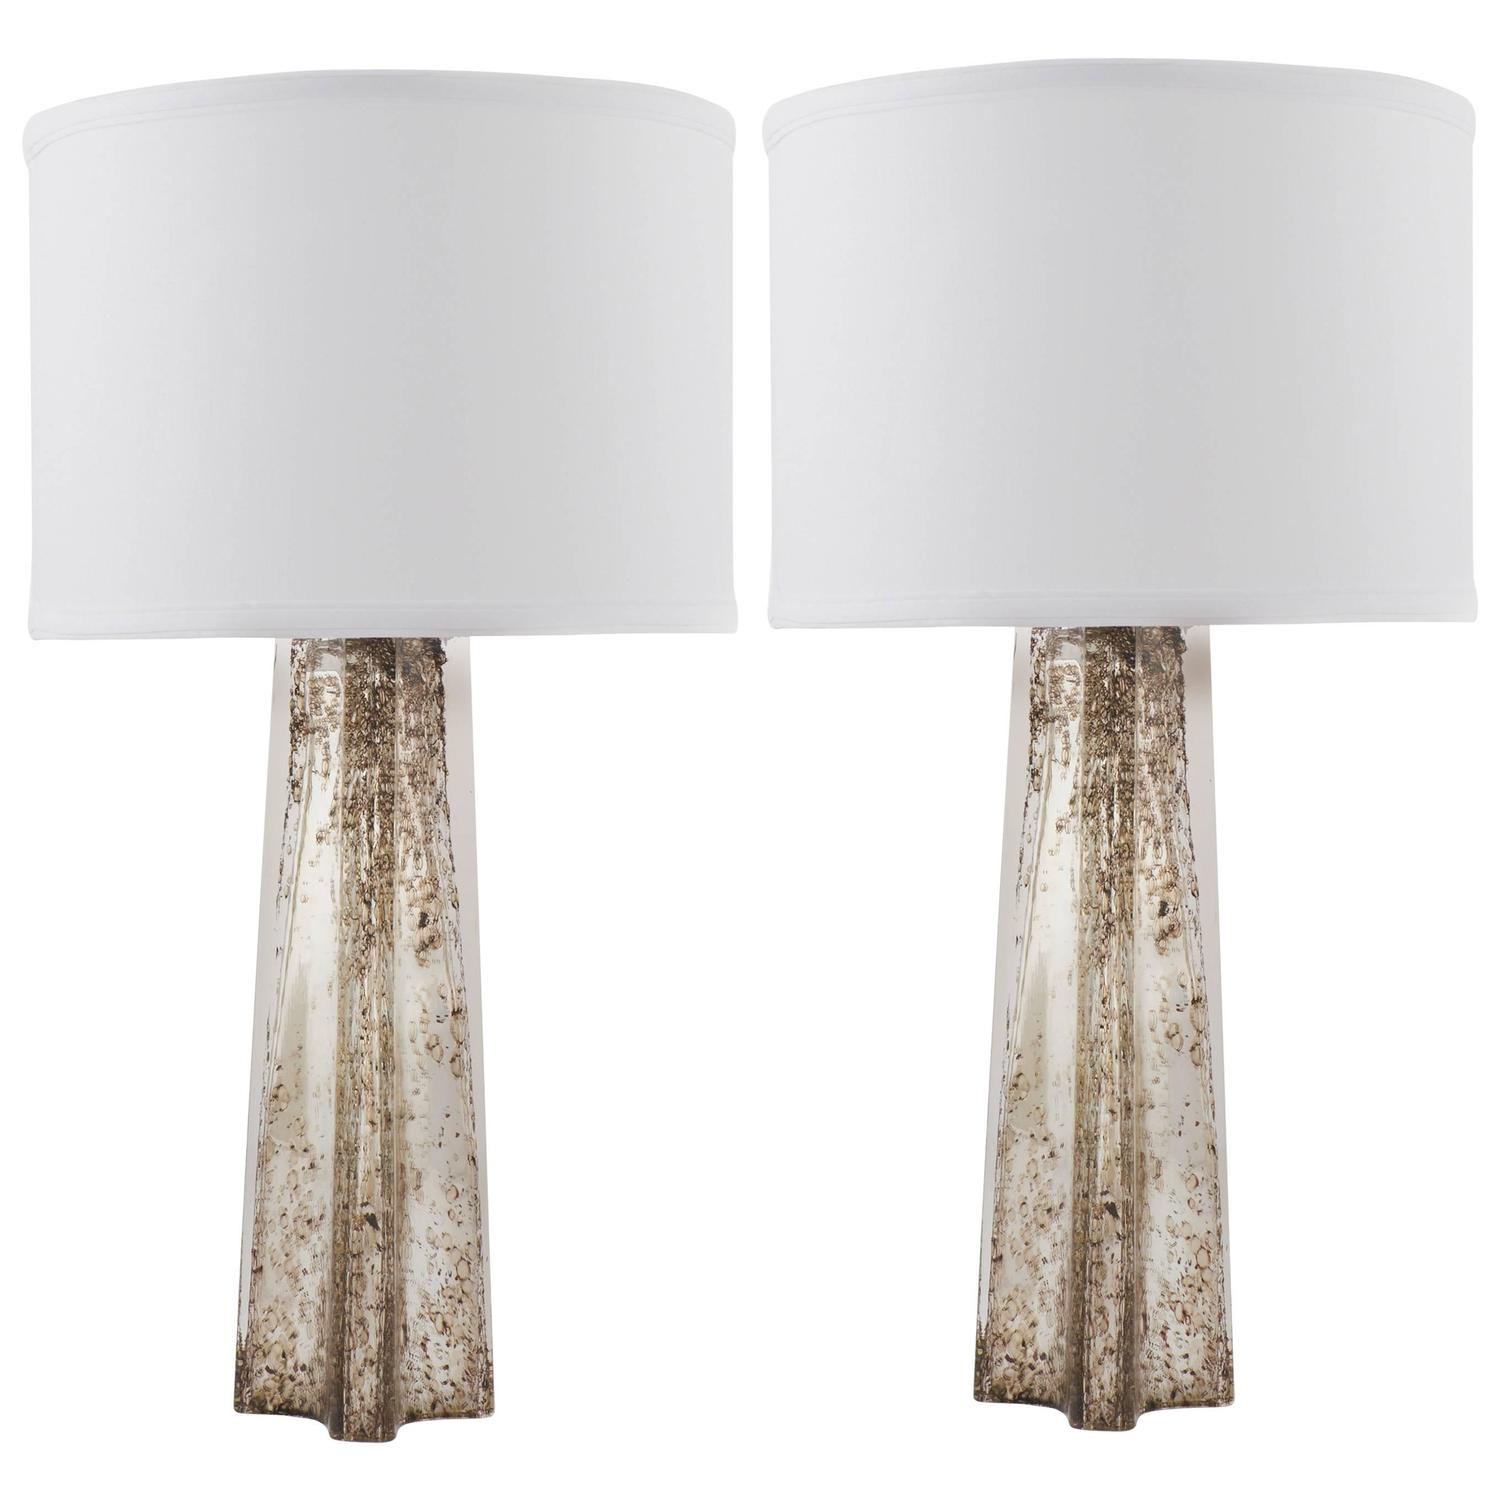 Pair of murano pulegoso mercury glass table lamps for sale at 1stdibs mozeypictures Image collections